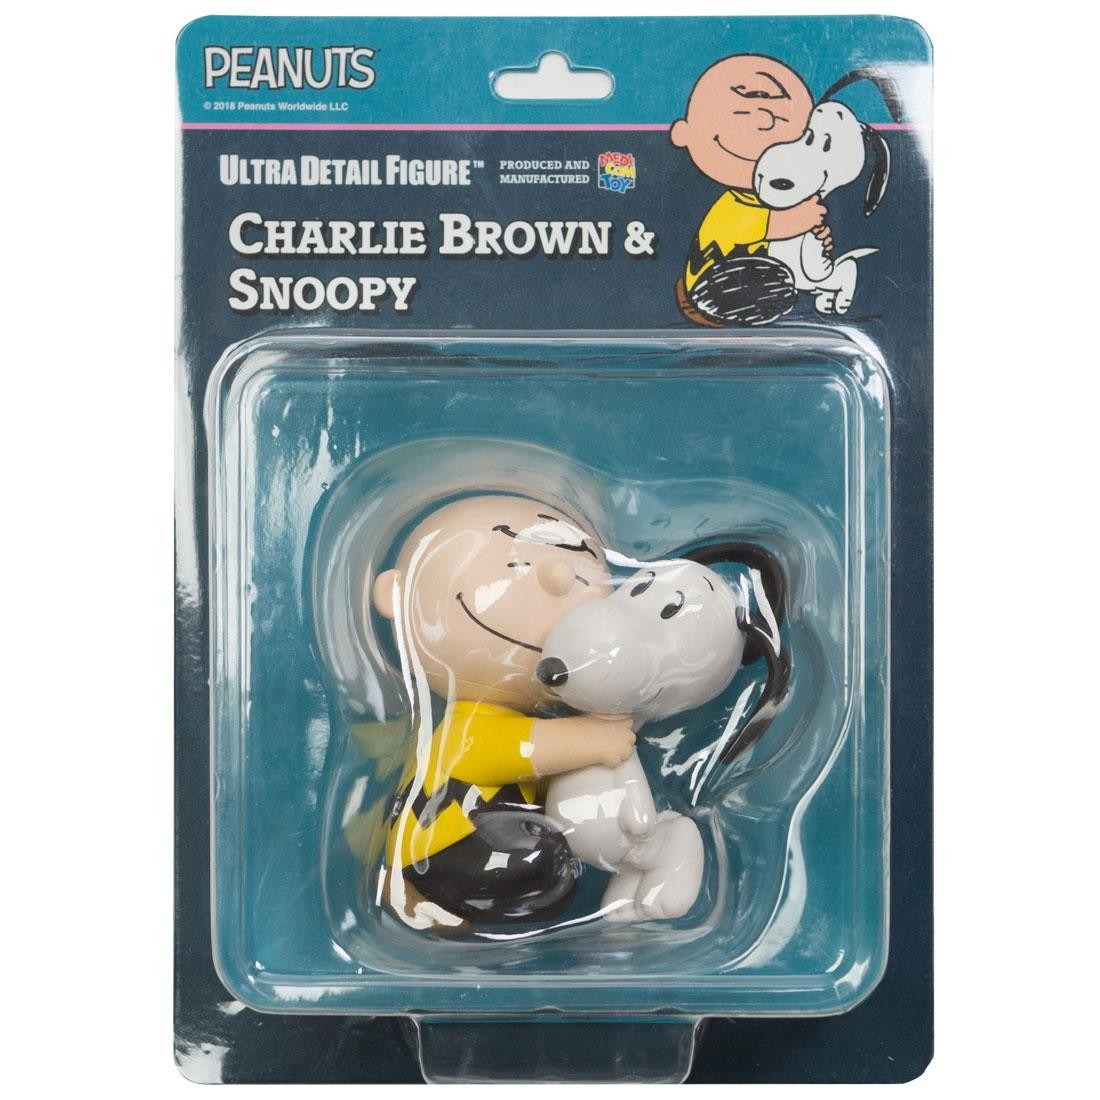 Medicom UDF Peanuts Series 8 Charlie Brown And Snoopy Ultra Detail Figures (tan)